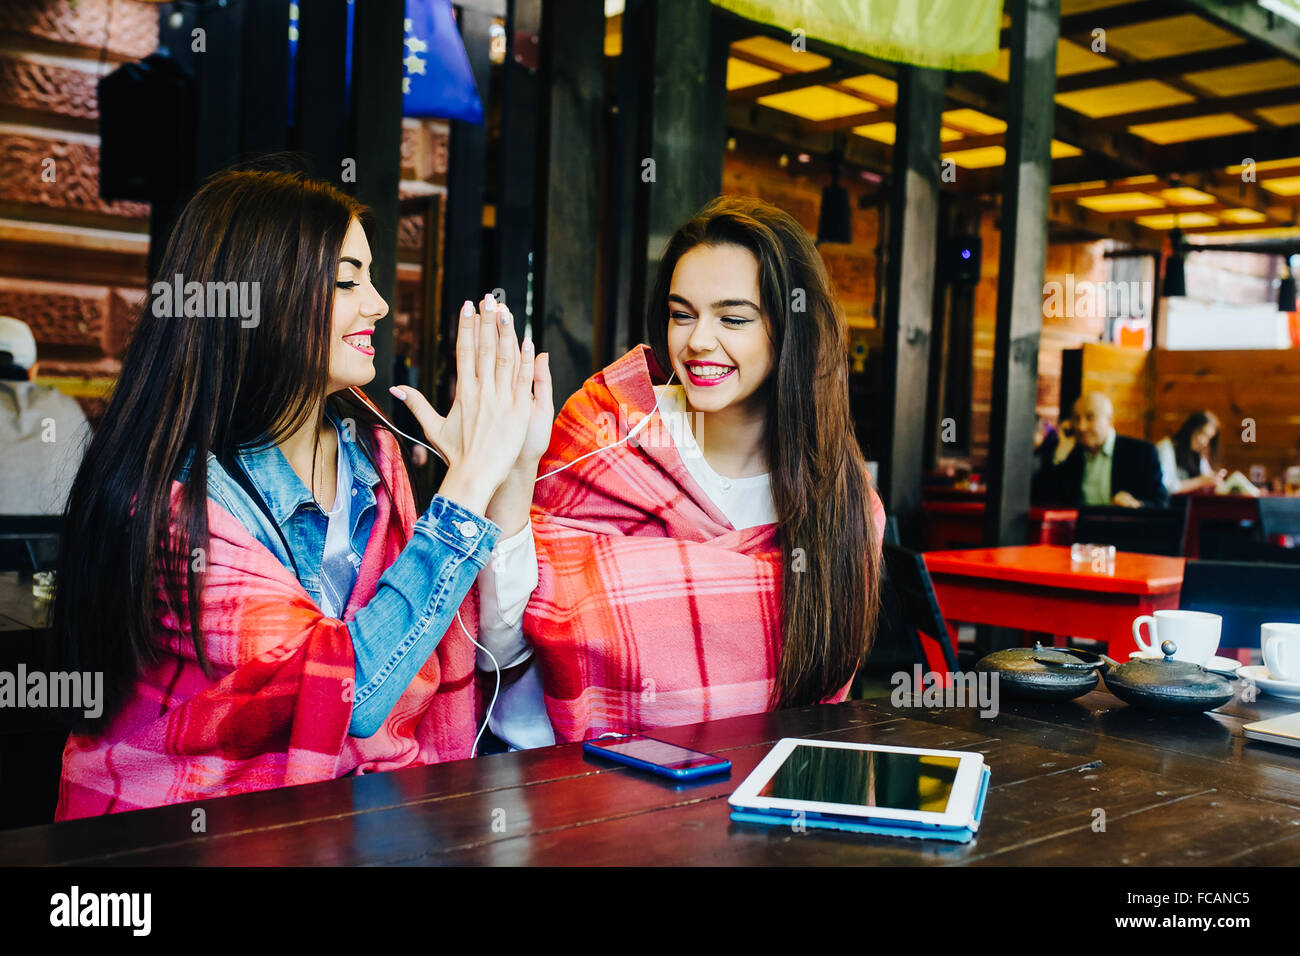 Two young and beautiful girls having fun in cafe - Stock Image